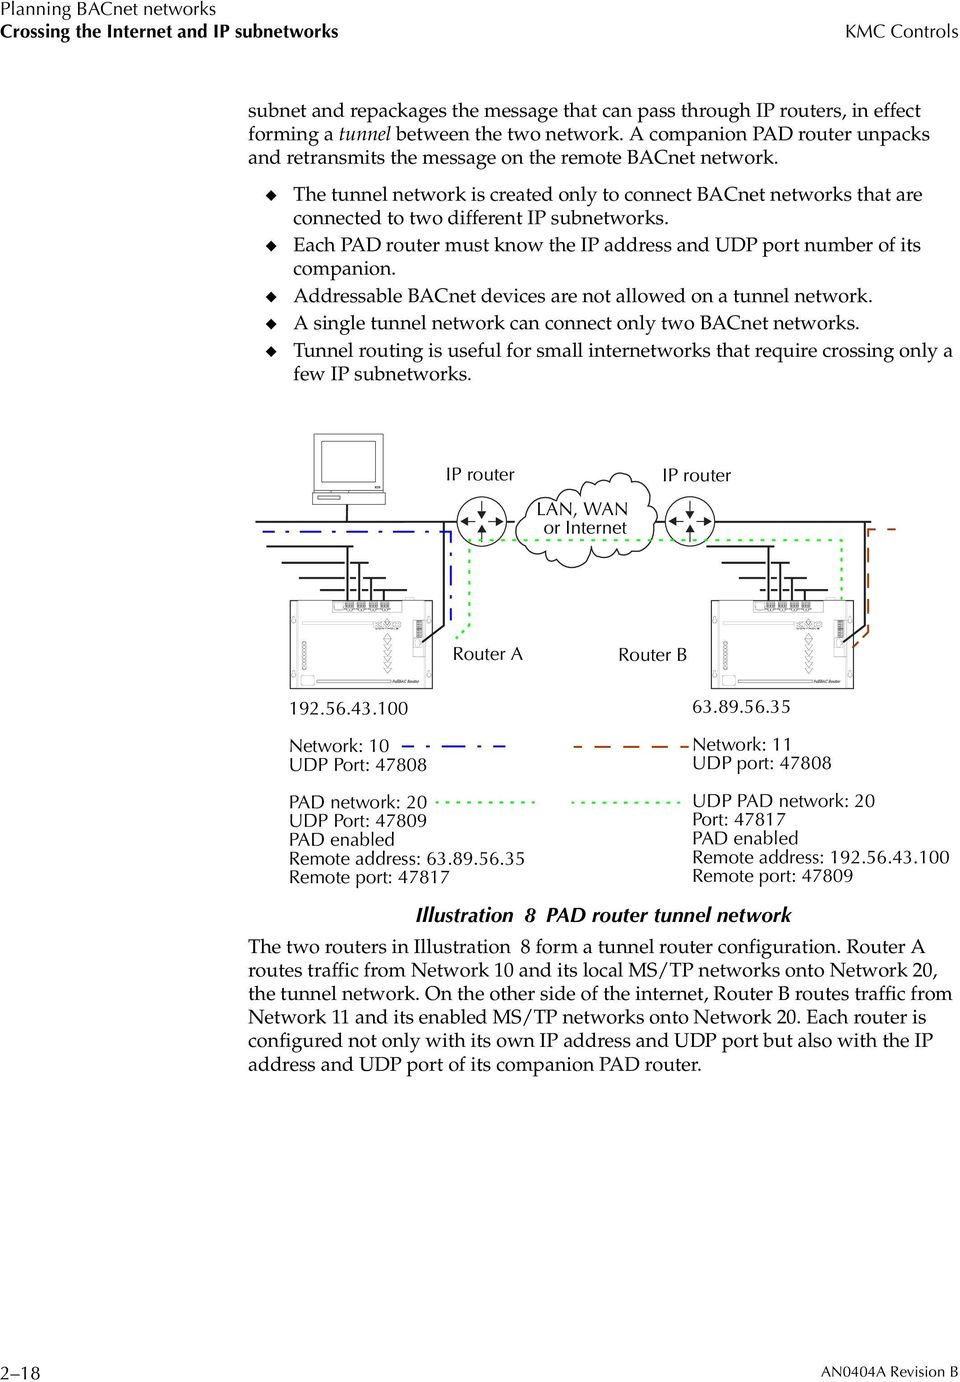 The tunnel network is created only to connect BACnet networks that are connected to two different IP subnetworks. Each PAD router must know the IP address and UDP port number of its companion.